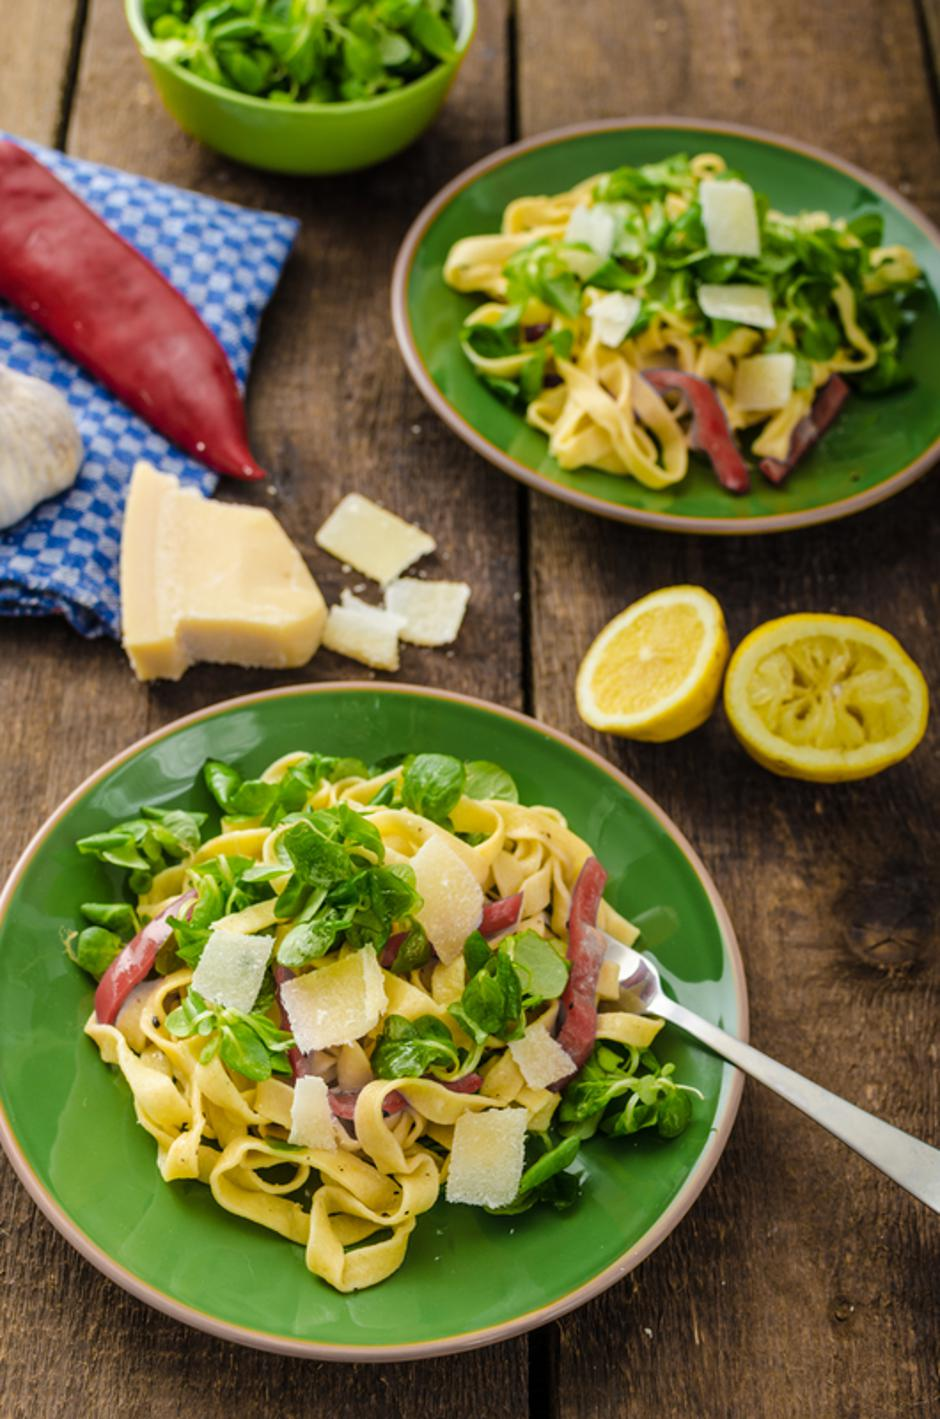 Tagliatelle with bacon, garlic and salad | Autor: Dreamstime